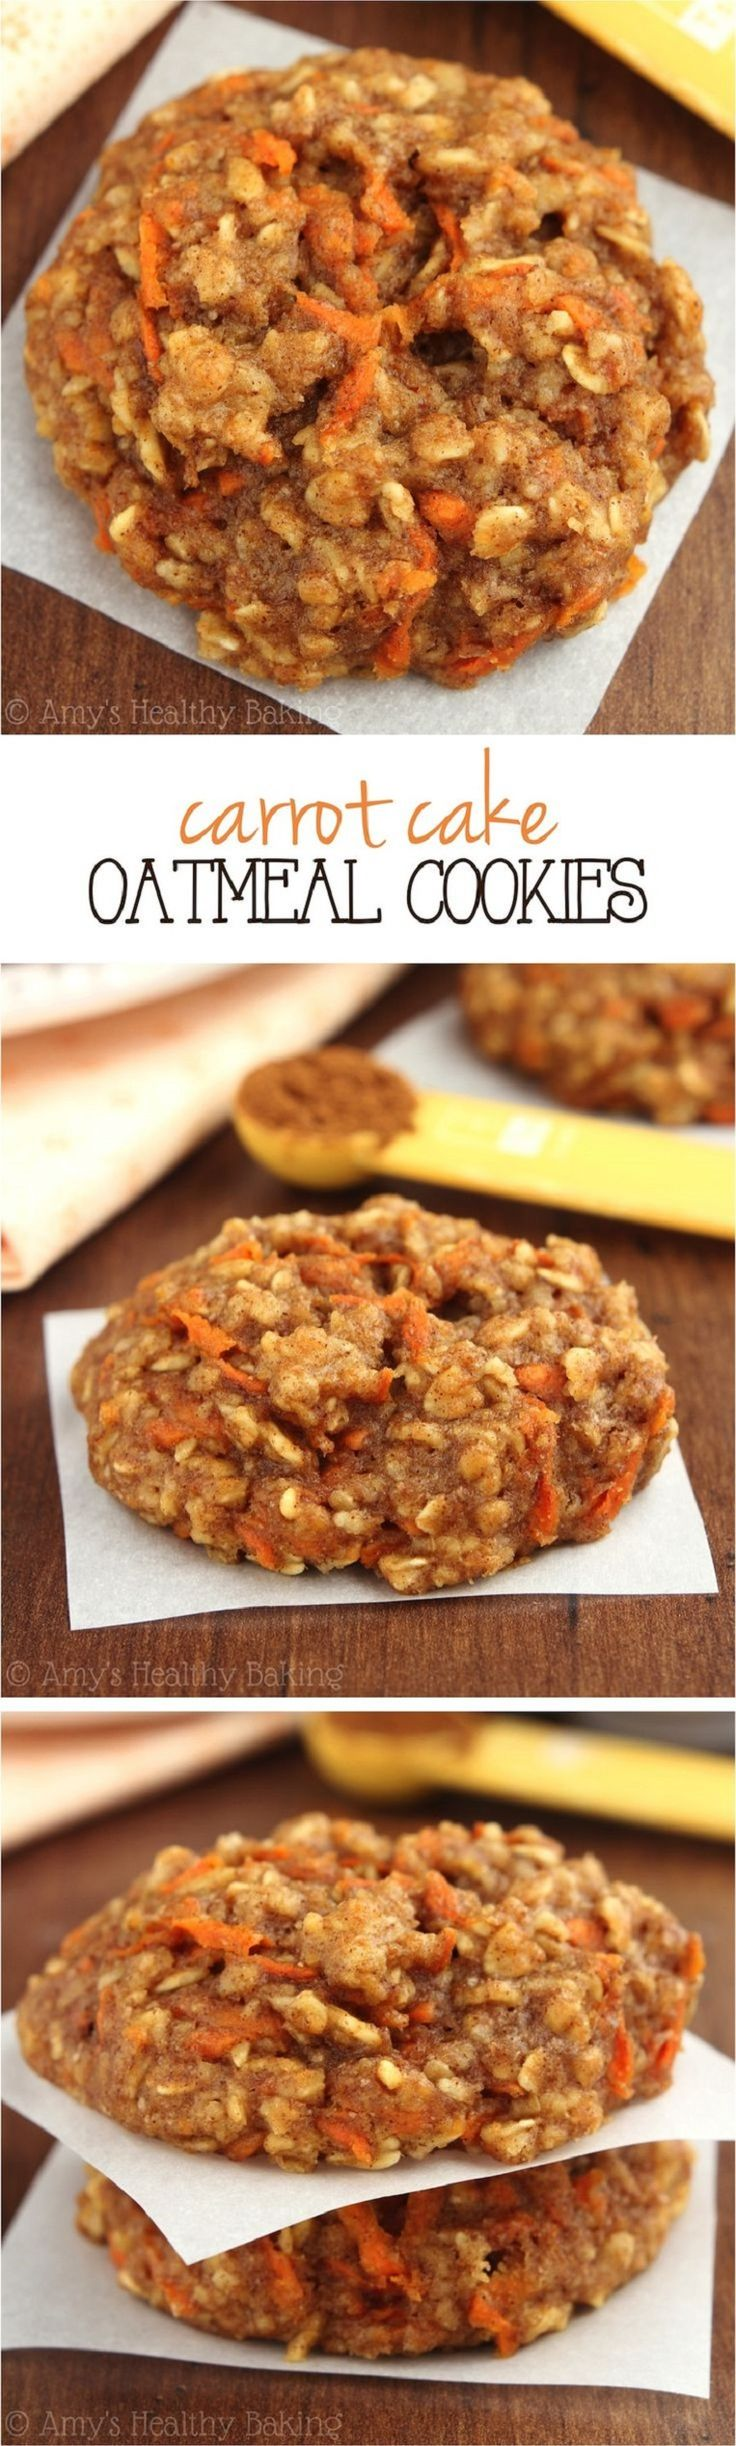 12 Baked Oatmeals You Should Be Eating   GleamItUp